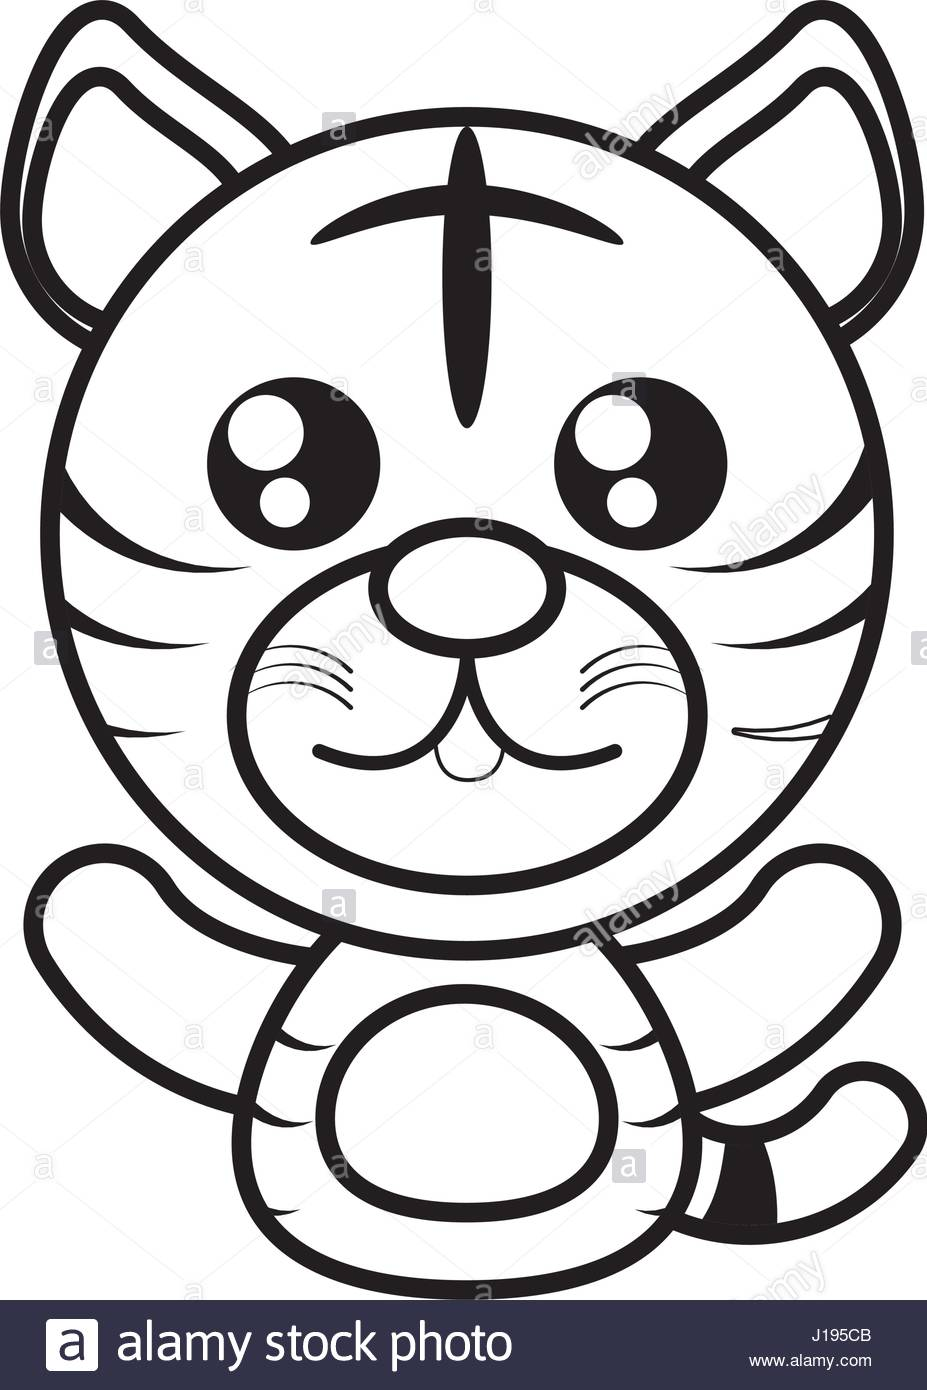 927x1390 Tiger Animal Toy Outline Stock Vector Art Amp Illustration, Vector